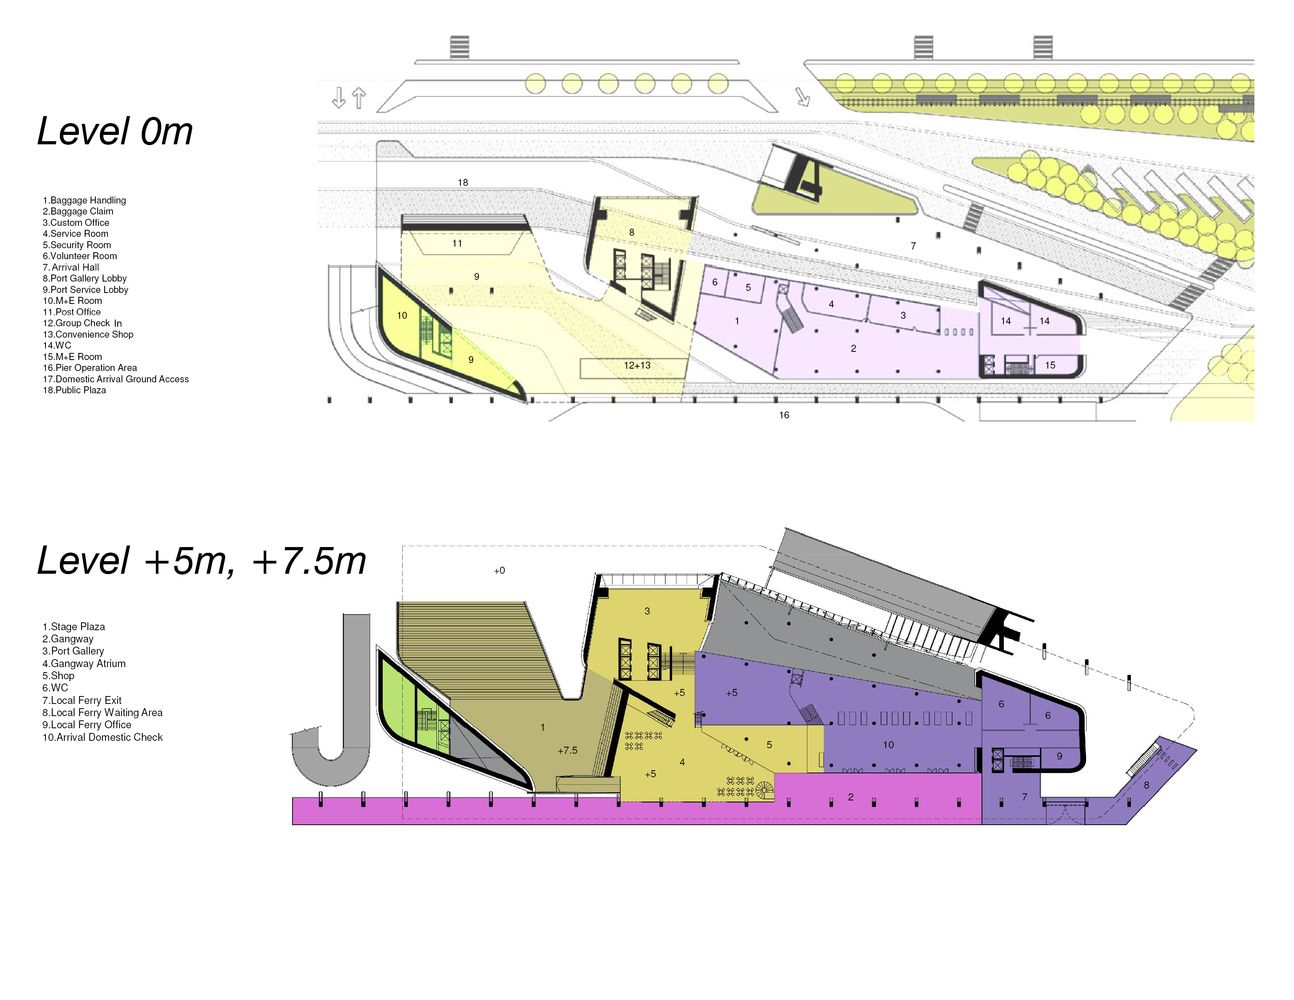 Gallery of Kaohsiung Port and Cruise Service Center Proposal / JET Architecture, CXT Architects & Archasia Design Group - 4